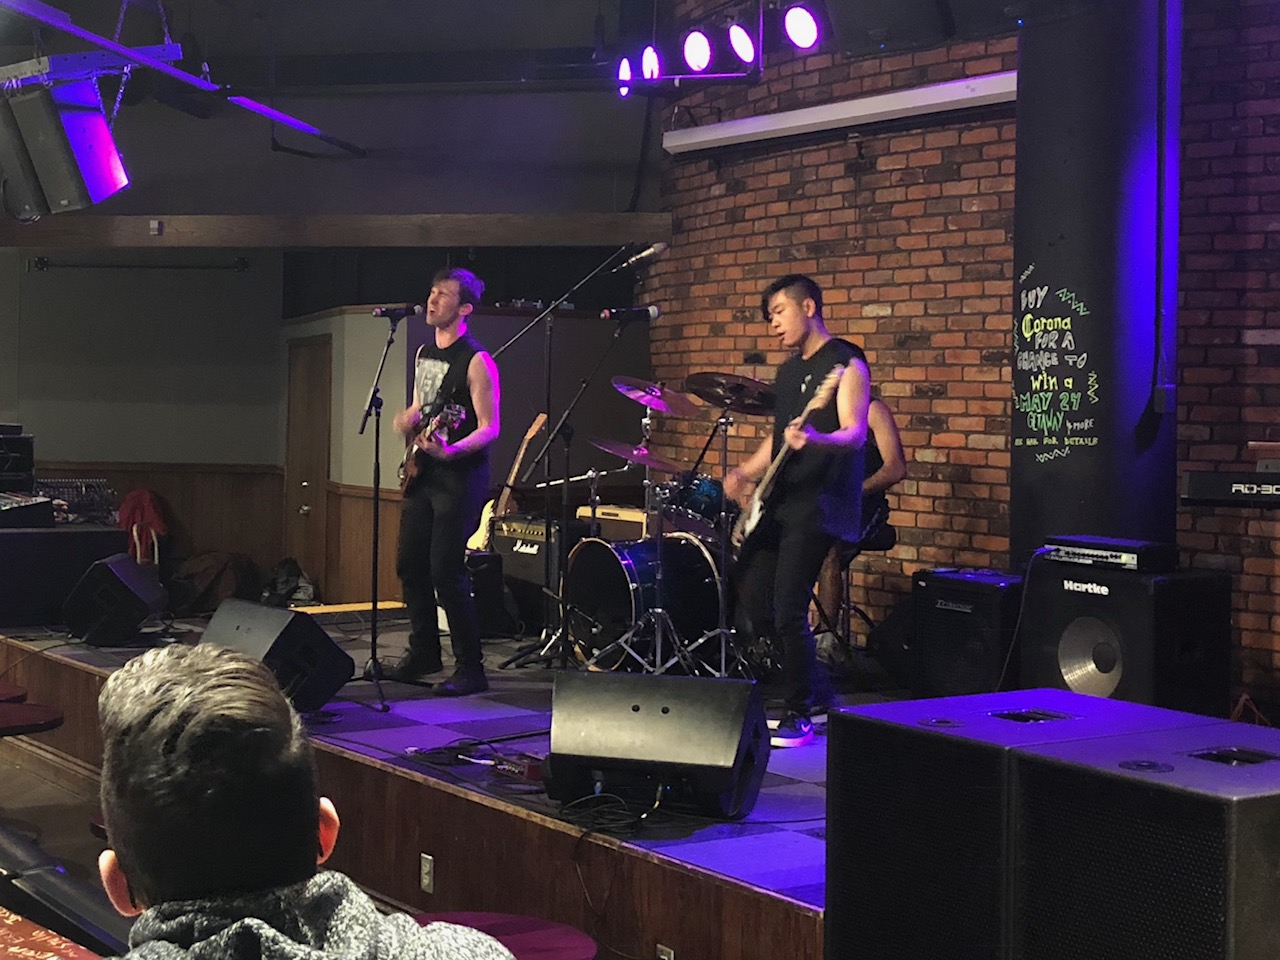 The Final Showdown for Battle of the Bands at Western University